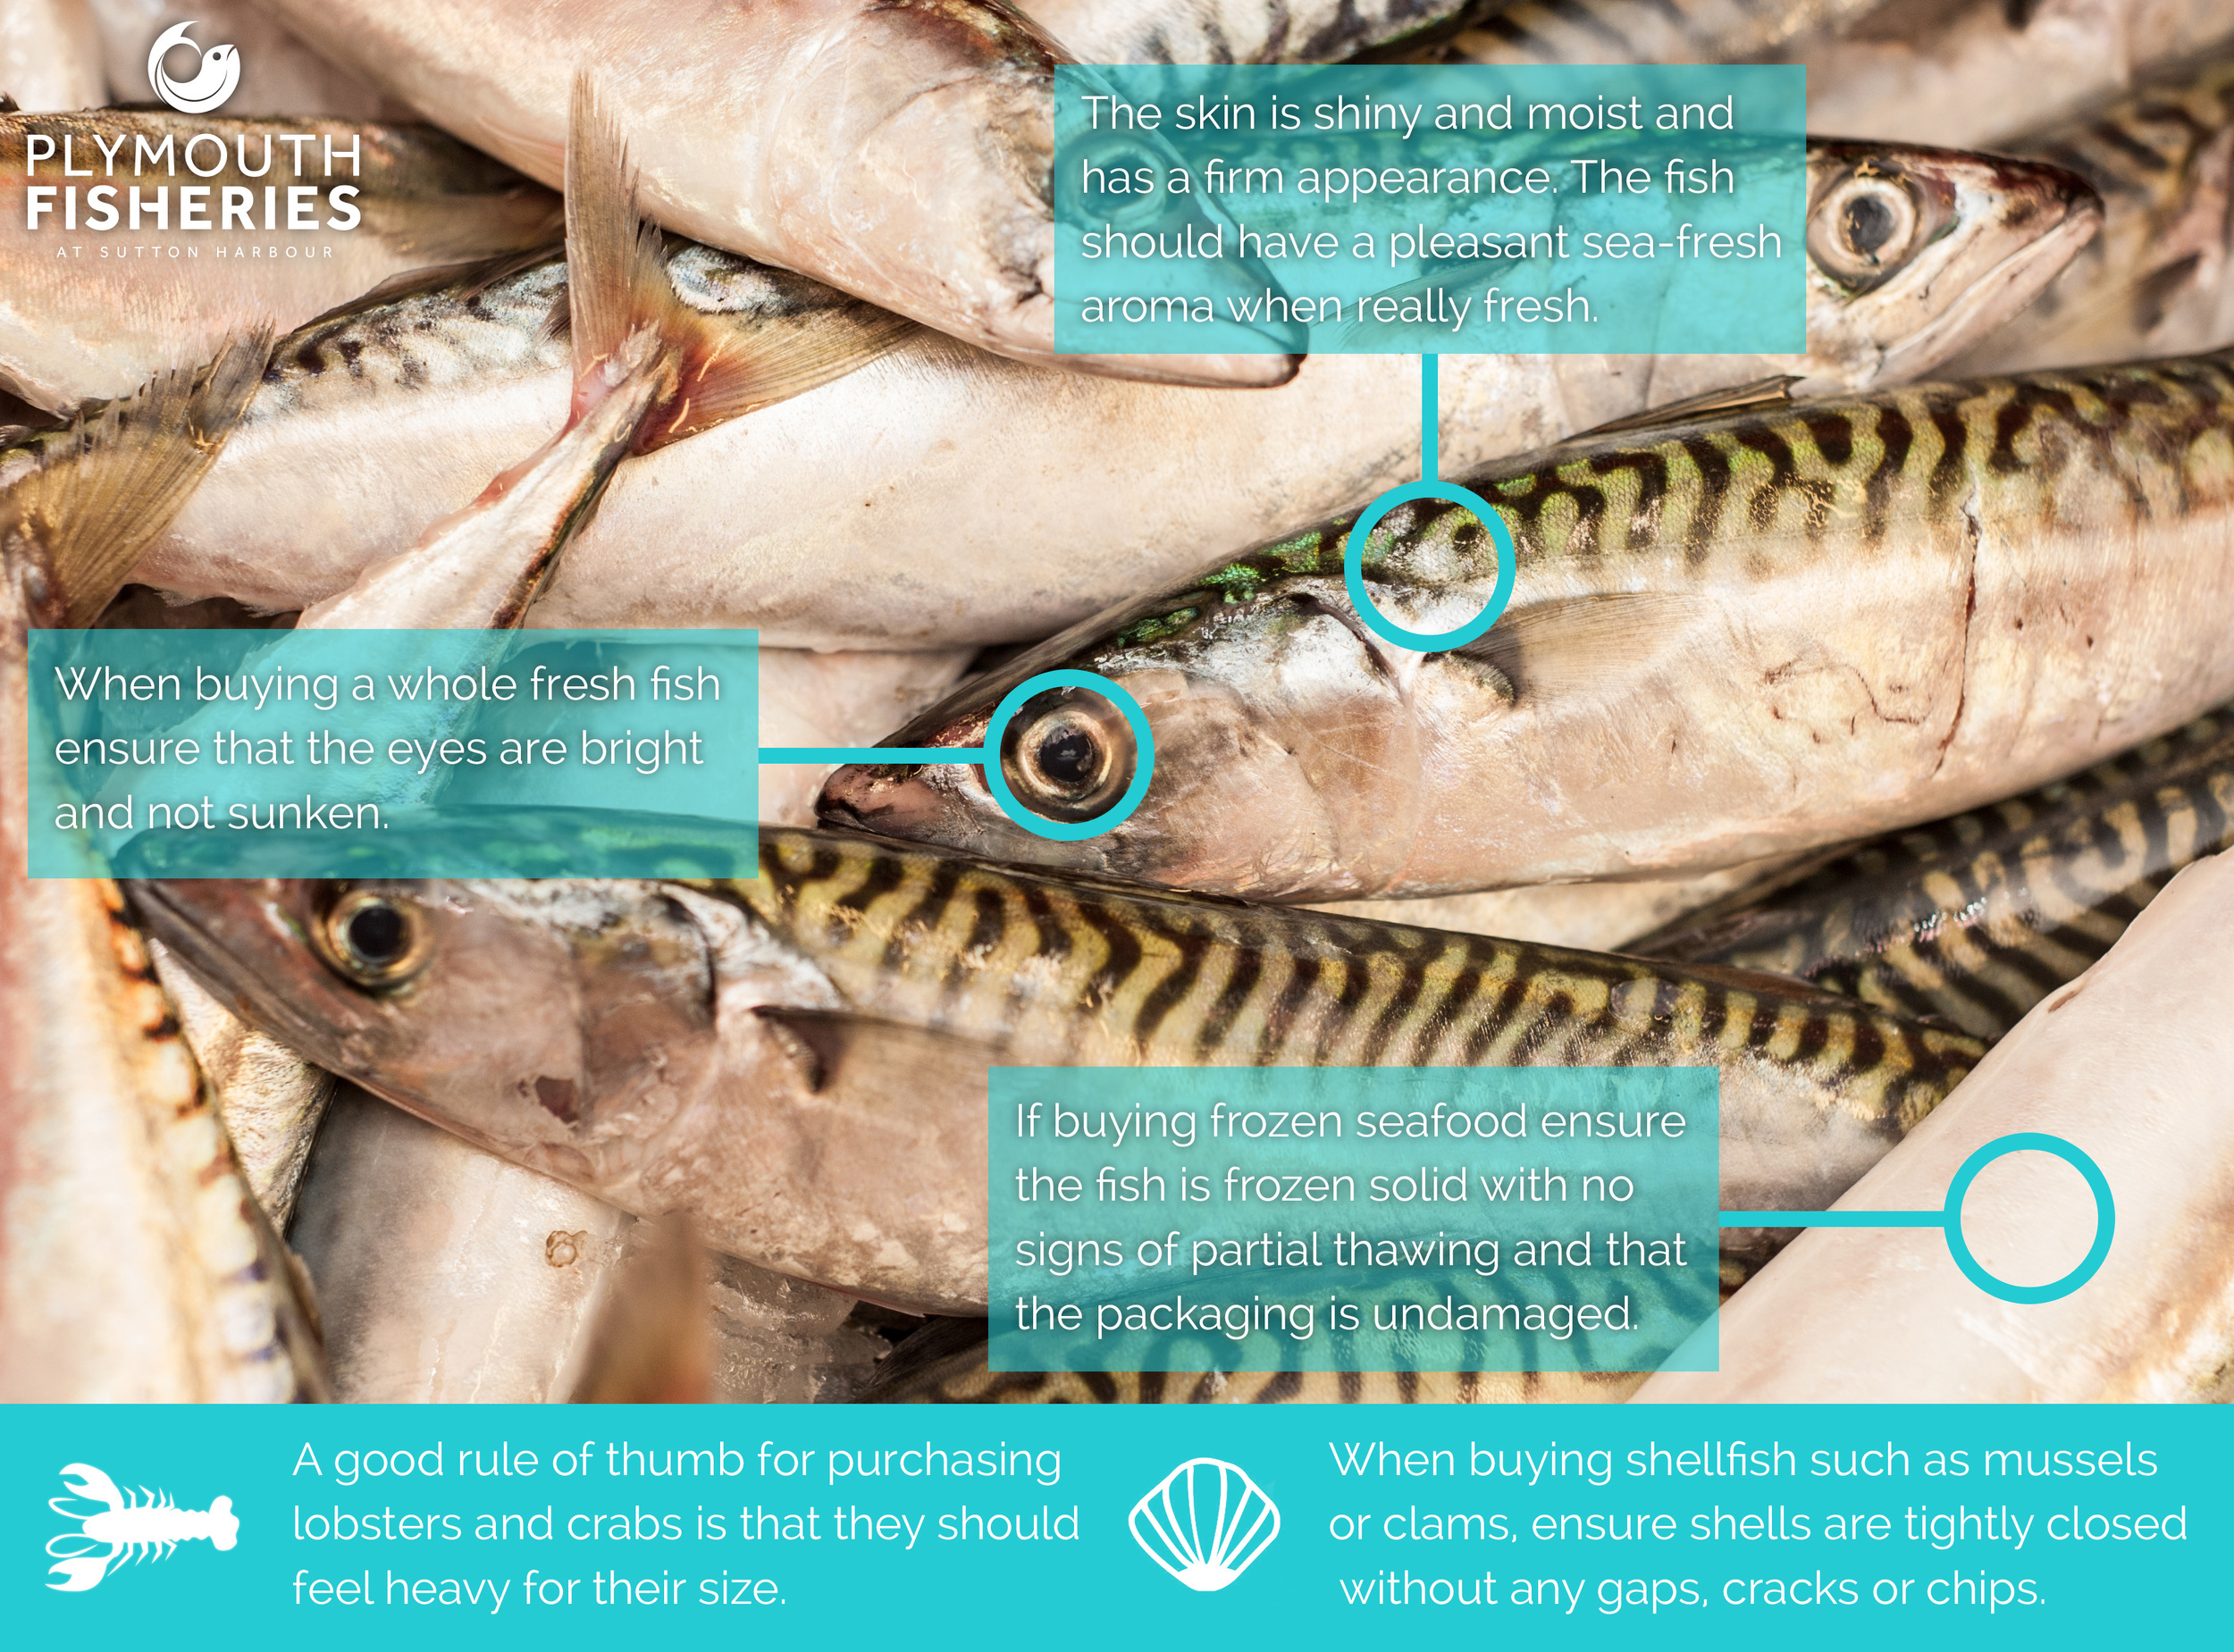 A guide to fresh fish at Plymouth Fisheries